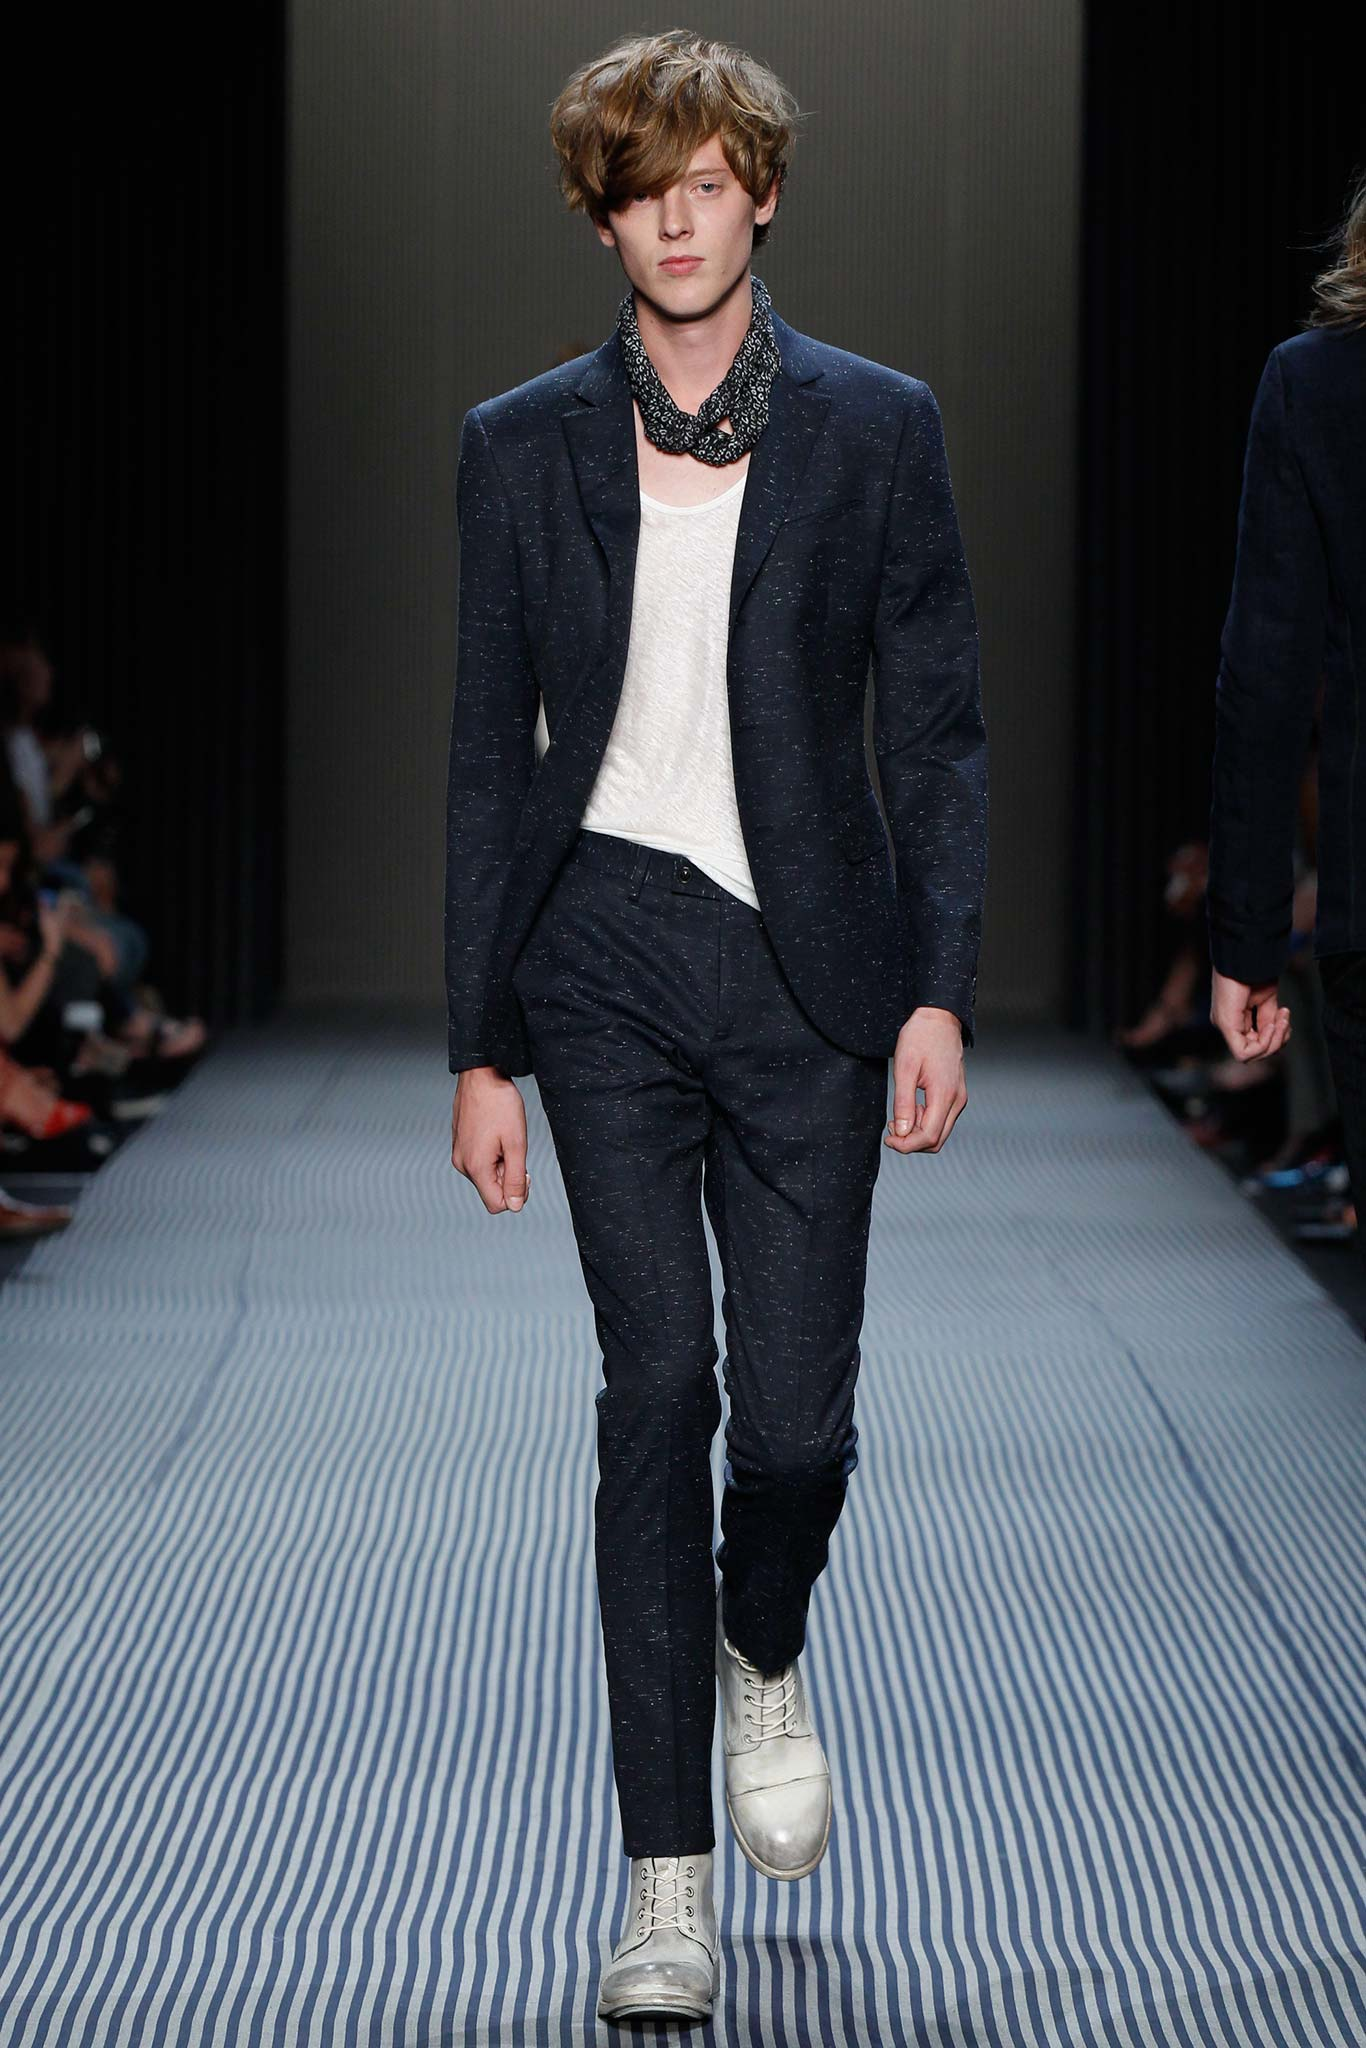 john varvatos, nyfwm, new york fashion week, new york fashion week mens, ss16